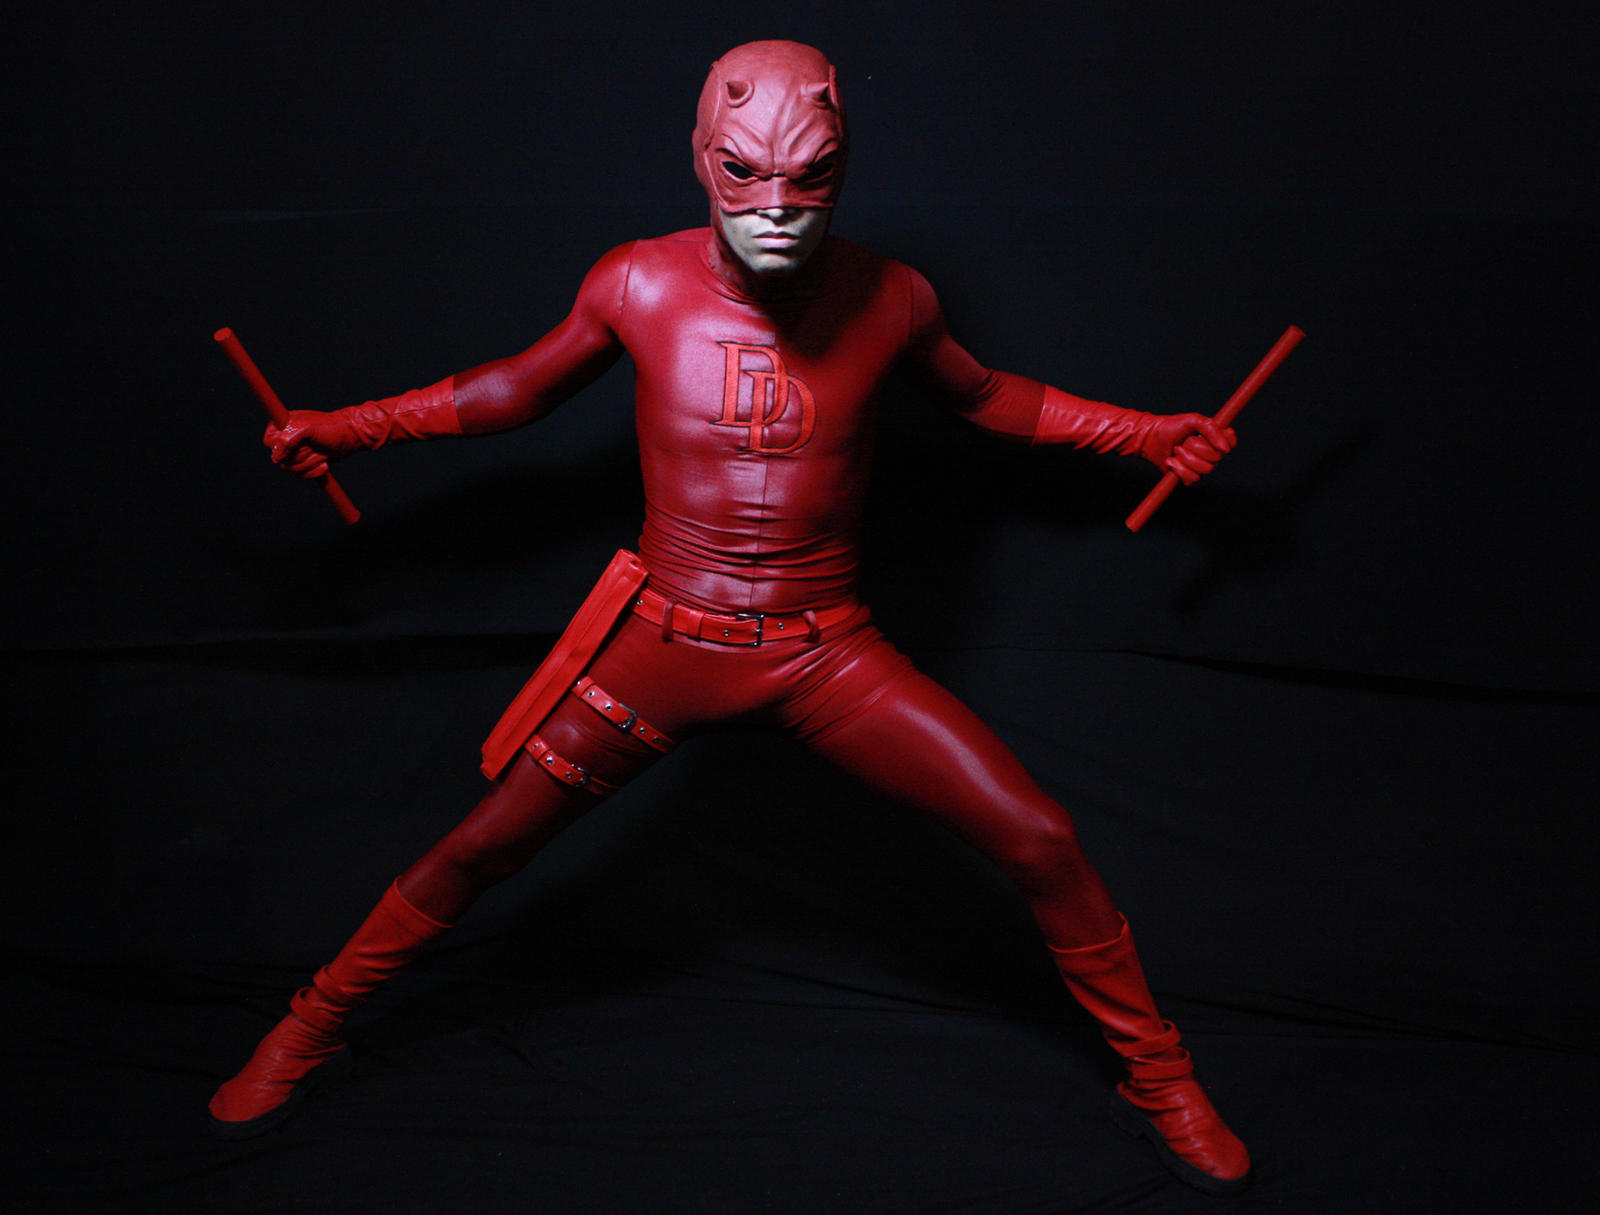 Daredevil - I'm Daredevil by CleytonAlves